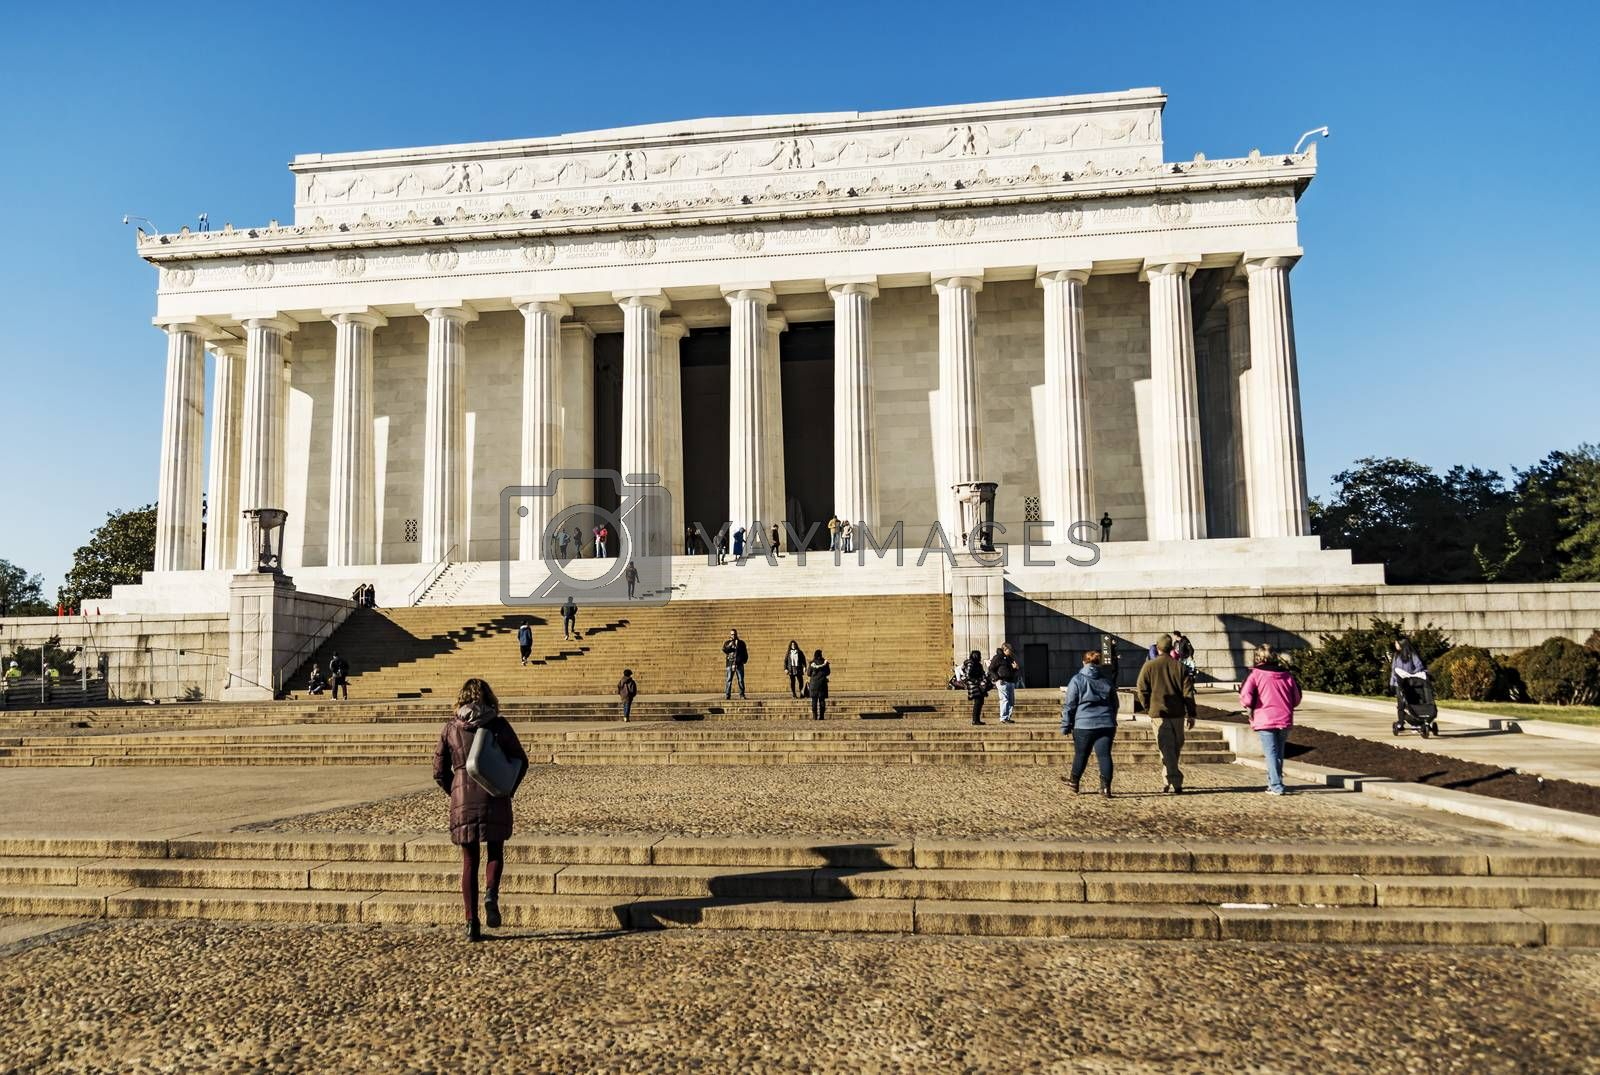 WASHINGTON DC, DECEMBER 2I: The Lincoln Memorial, located on the western end of the National Mall on December 21, 2017 in Washington DC, USA